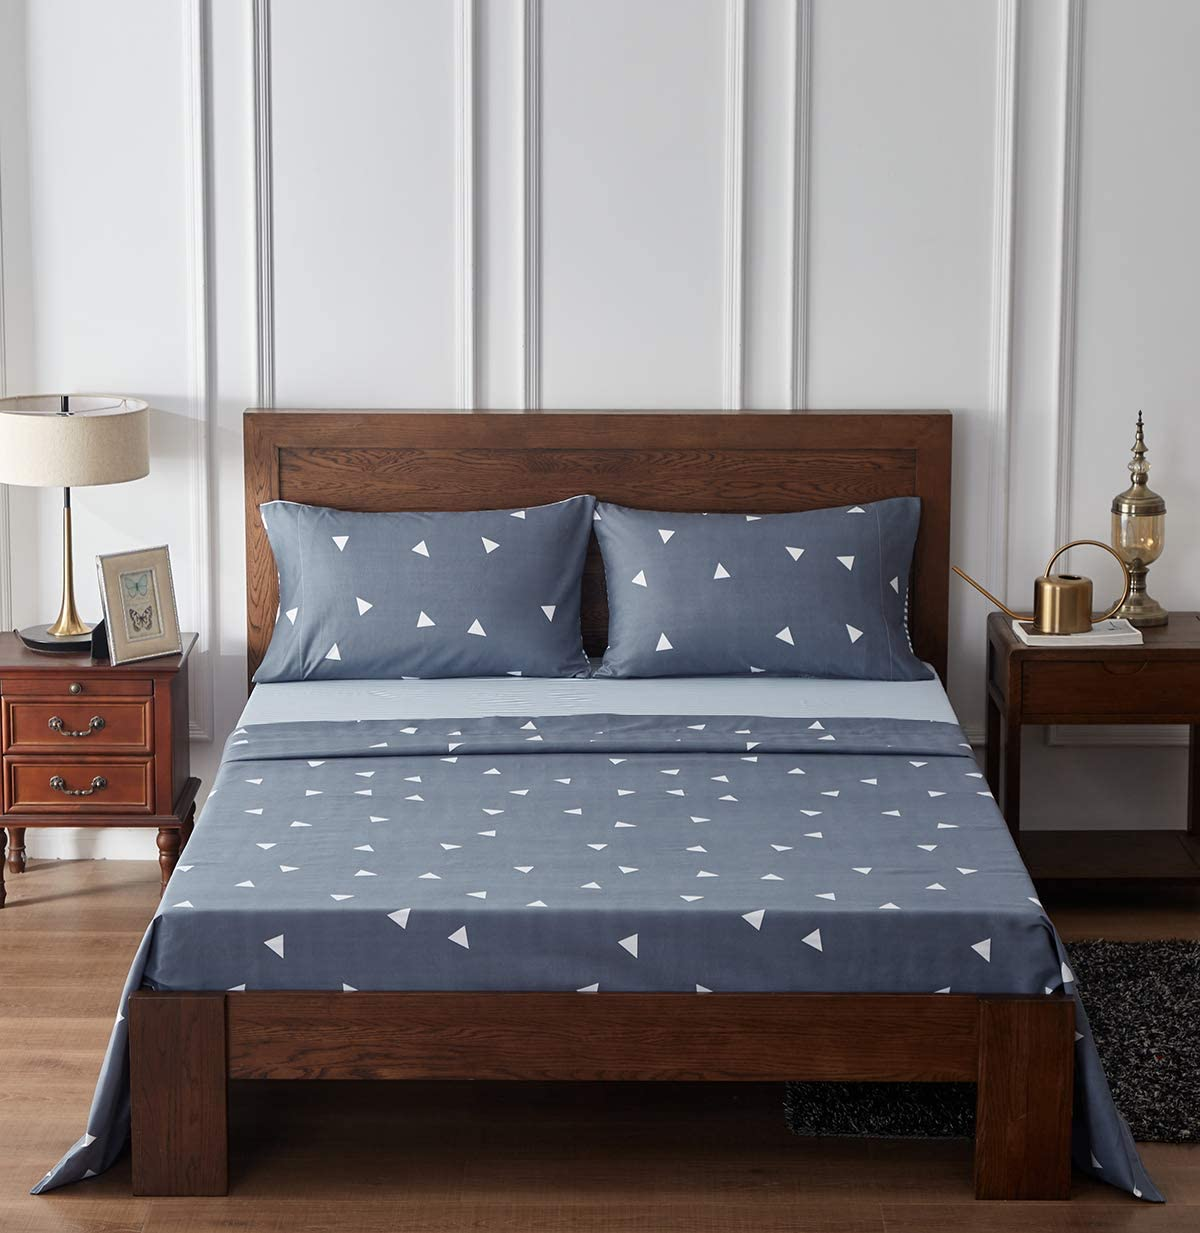 Uozzi Bedding Printed 4 Pieces Bed Sheets Set King Size 1500 Soft Brushed Microfiber Colorful Dots and Stripes Patterned Wrinkle and Hypoallergenic Adult Bedding Set